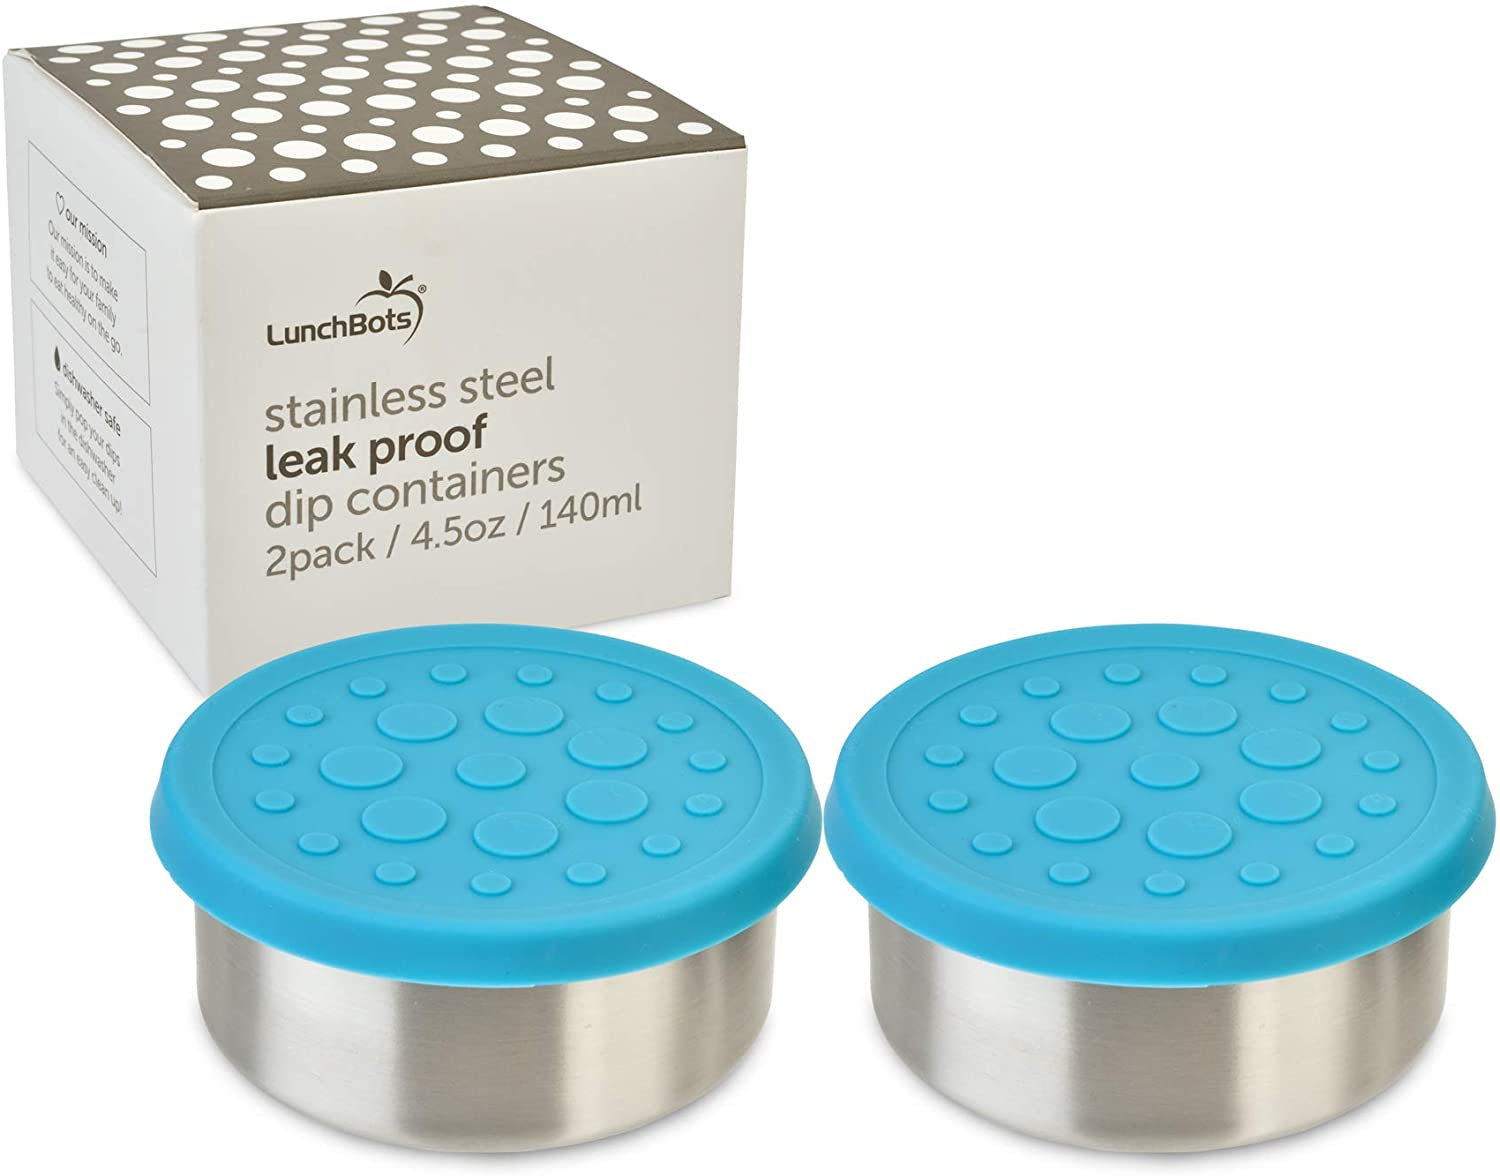 LunchBots 4.5 oz Leak Proof Snack and Side Dish Containers - Set of 2 (4.5 oz) - Spill Proof in Bags and Bento Boxes - Food-Grade Stainless Steel With Silicone Lids - Aqua